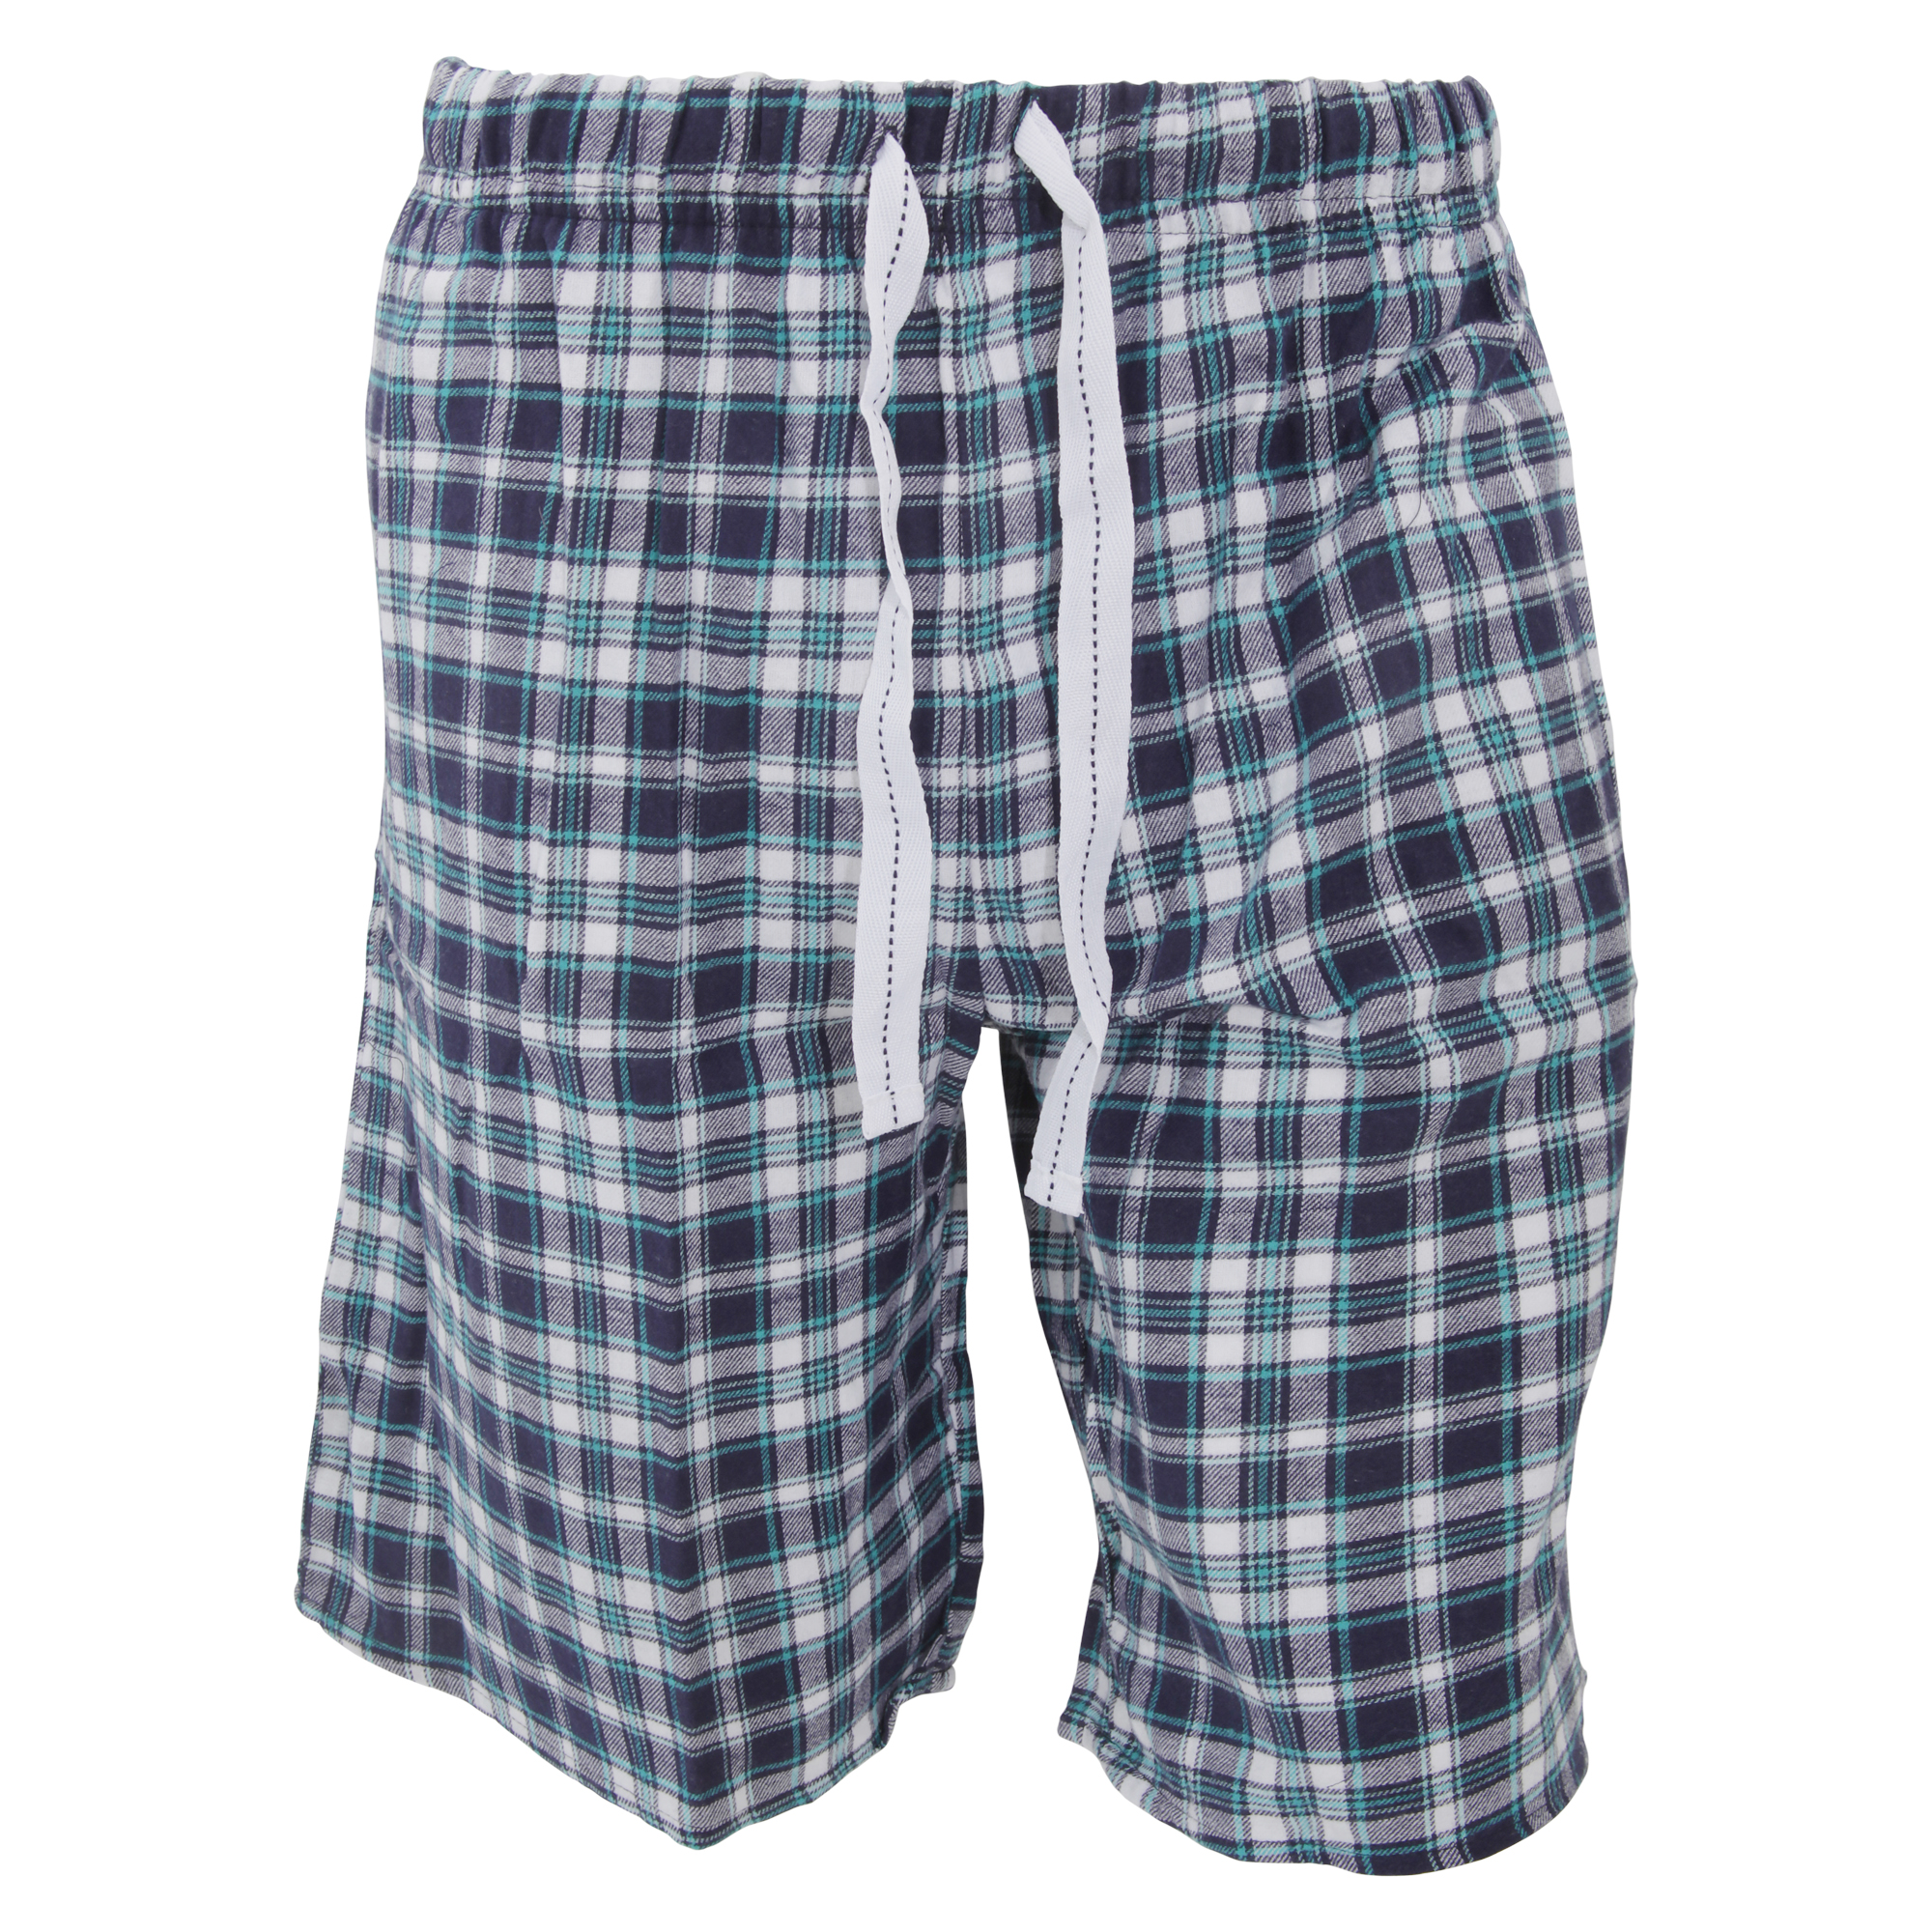 Men. Kids. Shoes. Jewelry & Watches. Bags & Accessories. Premium Beauty. Savings. Pajama Pants. Showing 40 of results that match your query. Product - Laura Scott Women Gray Satin Trim Pajamas Lightweight Short Sleeve Pajama Set. Product Image. Price $ Product Title. Laura Scott Women Gray Satin Trim Pajama s Lightweight.